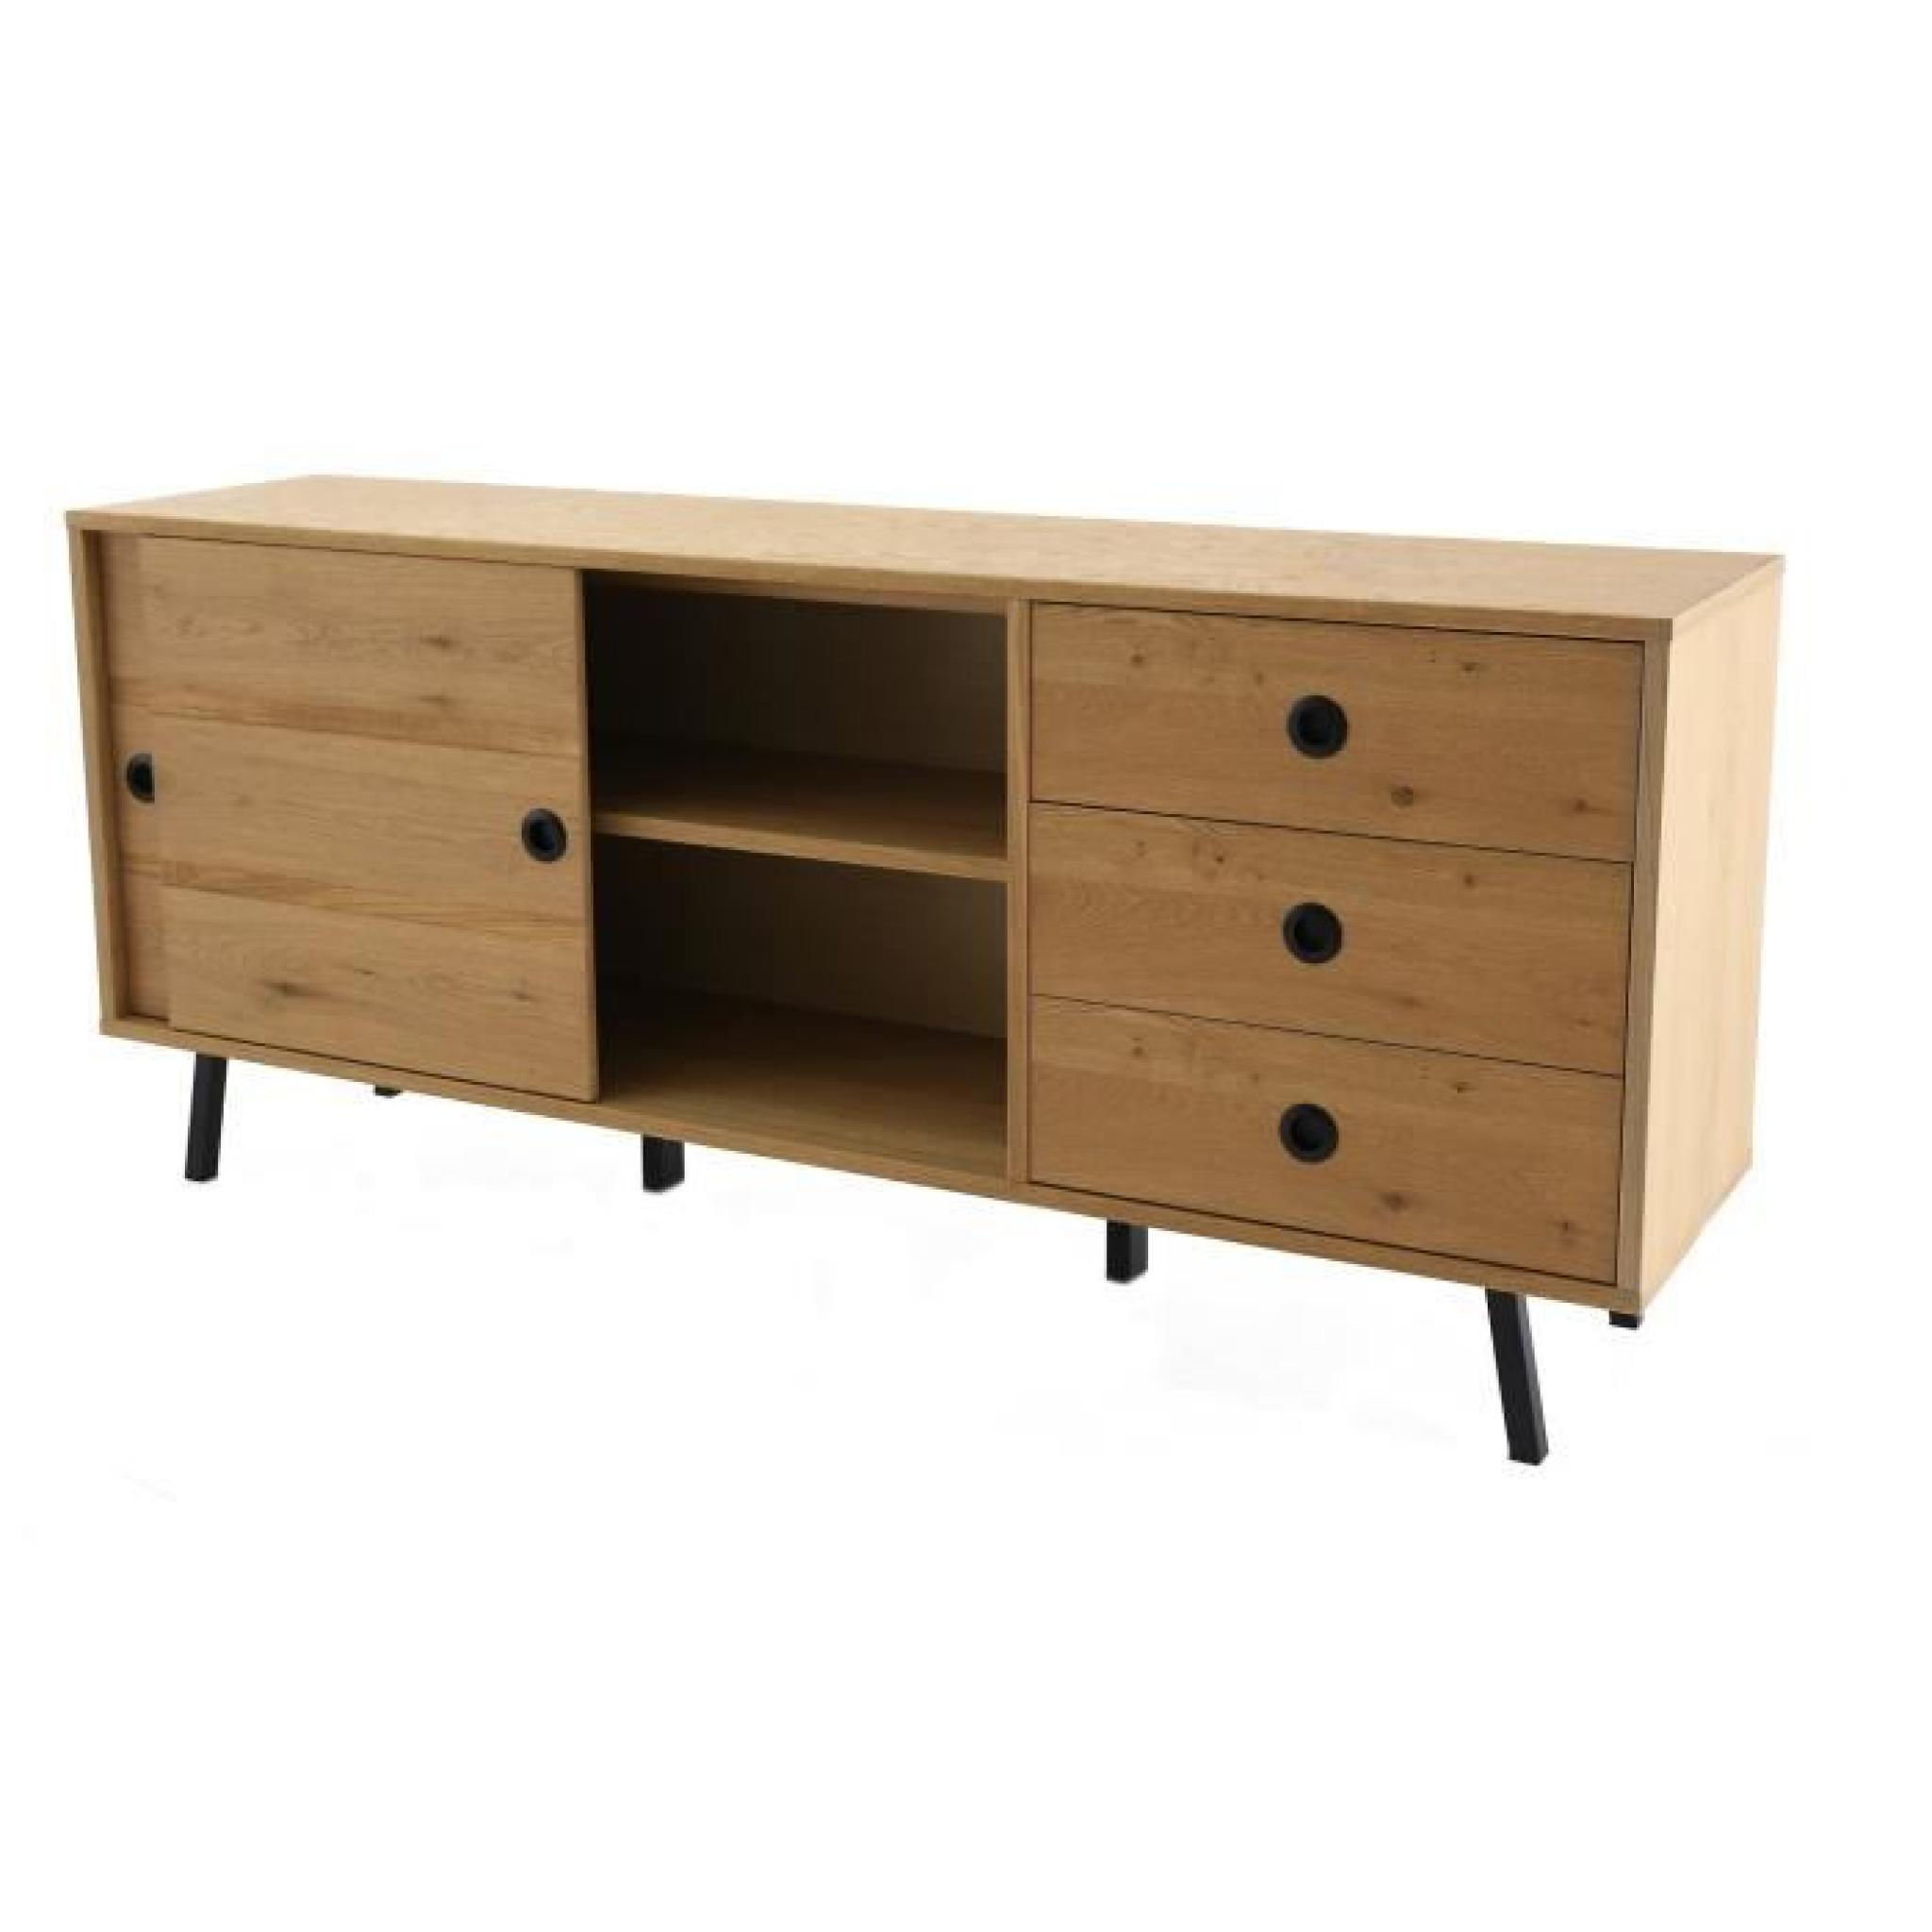 norway meuble buffet bas 2 portes coulissantes et 3. Black Bedroom Furniture Sets. Home Design Ideas